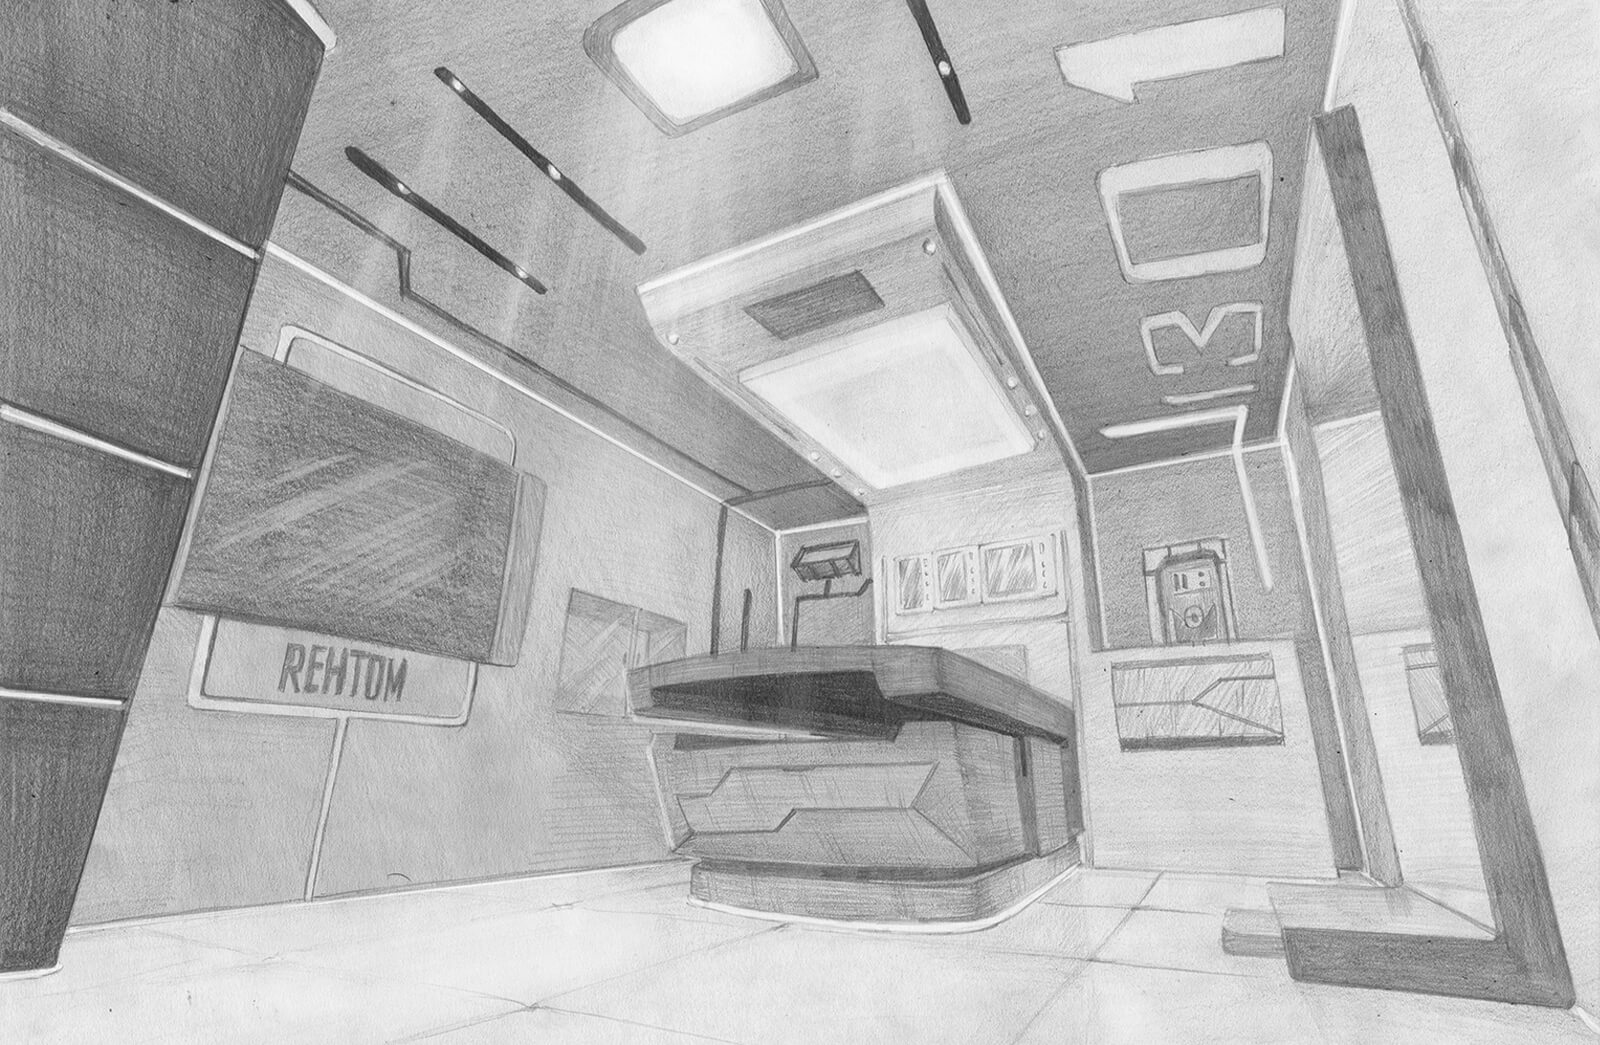 Black-and-white drawing of a futuristic medical bay with an examining table, wall displays and lighting